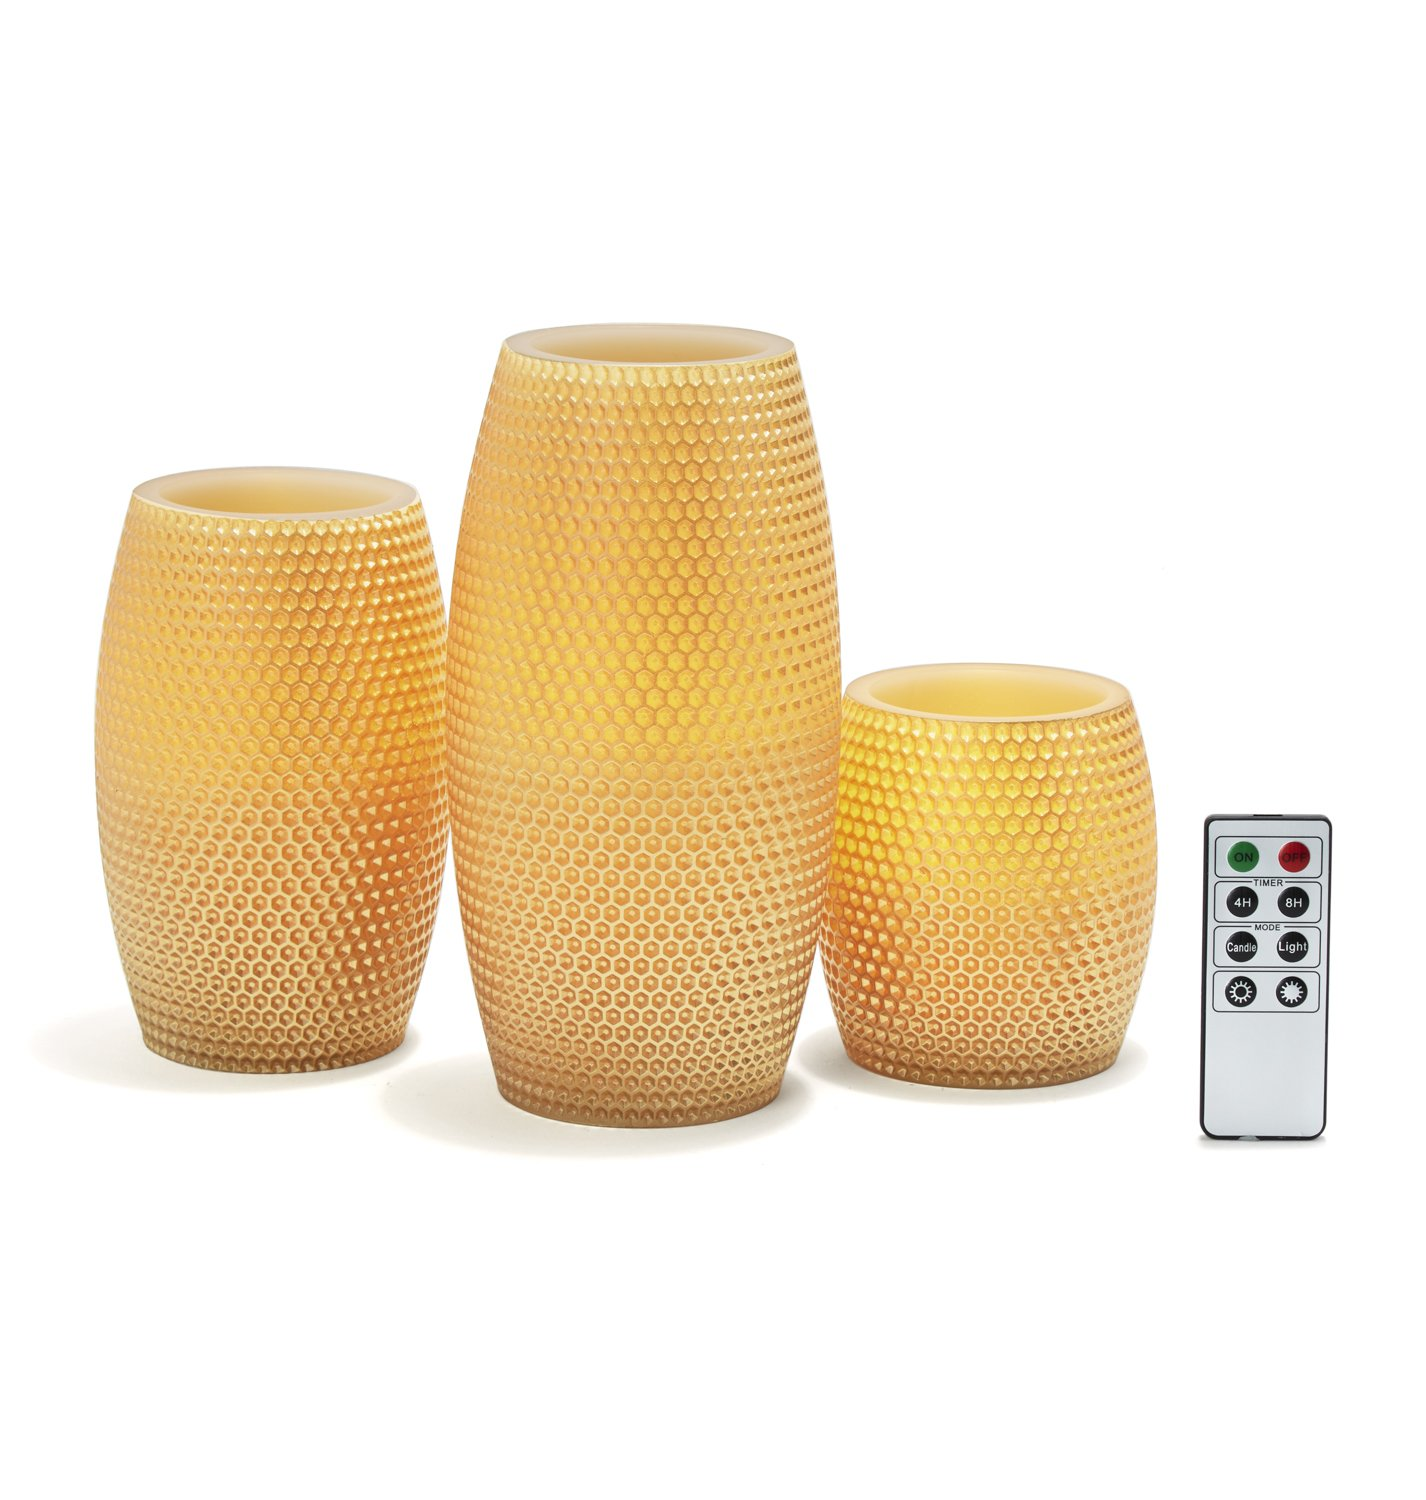 Gold Flameless Large Wax Candles, Set of 3, Warm White LEDs, Honeycomb Carved Finish, Remote & Batteries Included by LampLust